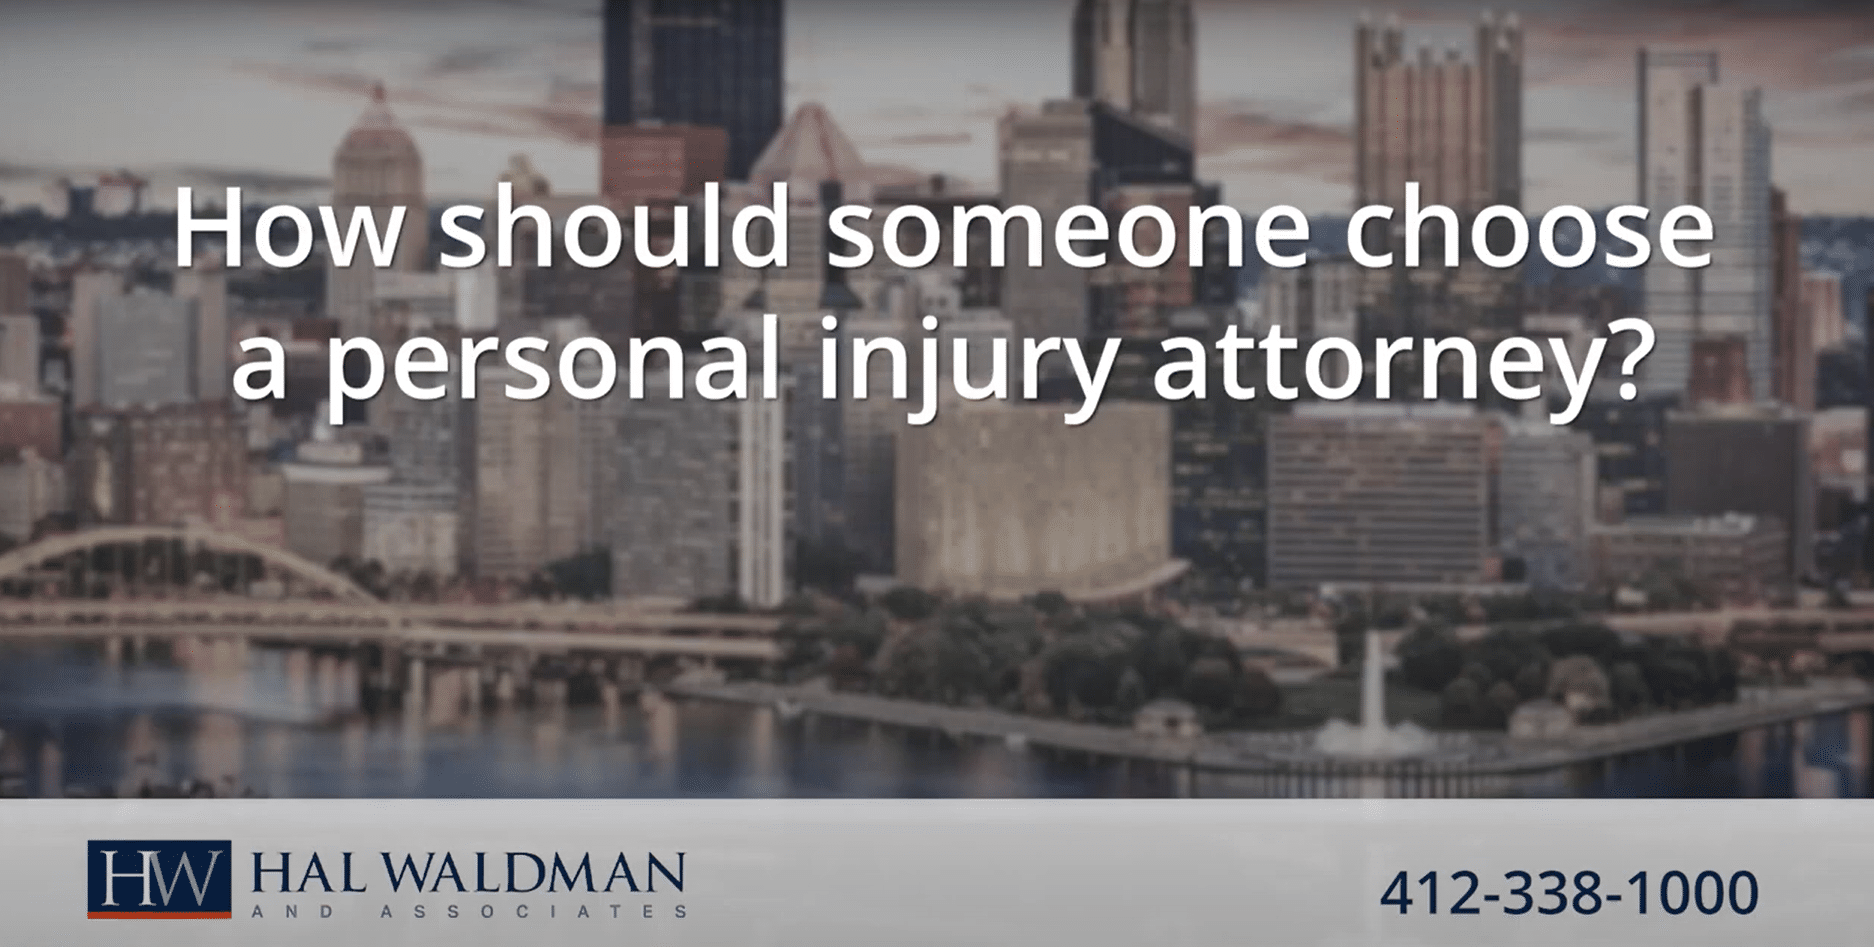 How should someone choose a personal injury attorney